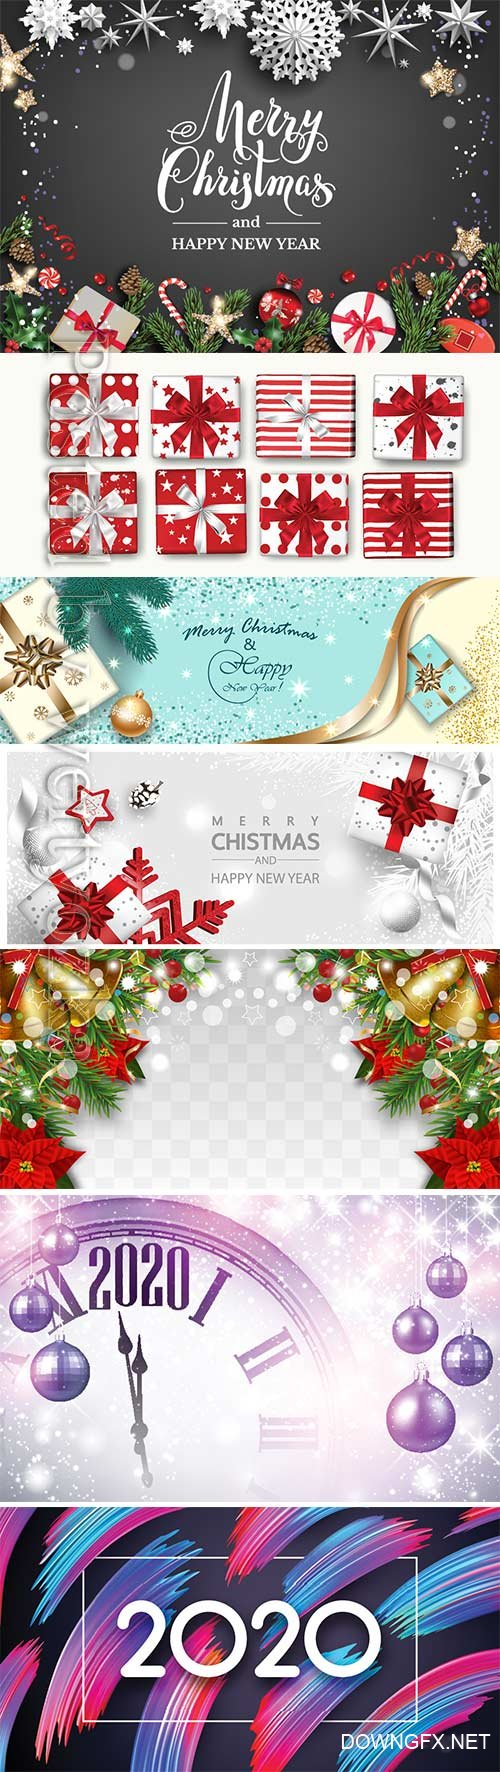 2020 Merry Chistmas and Happy New Year vector illustration # 14